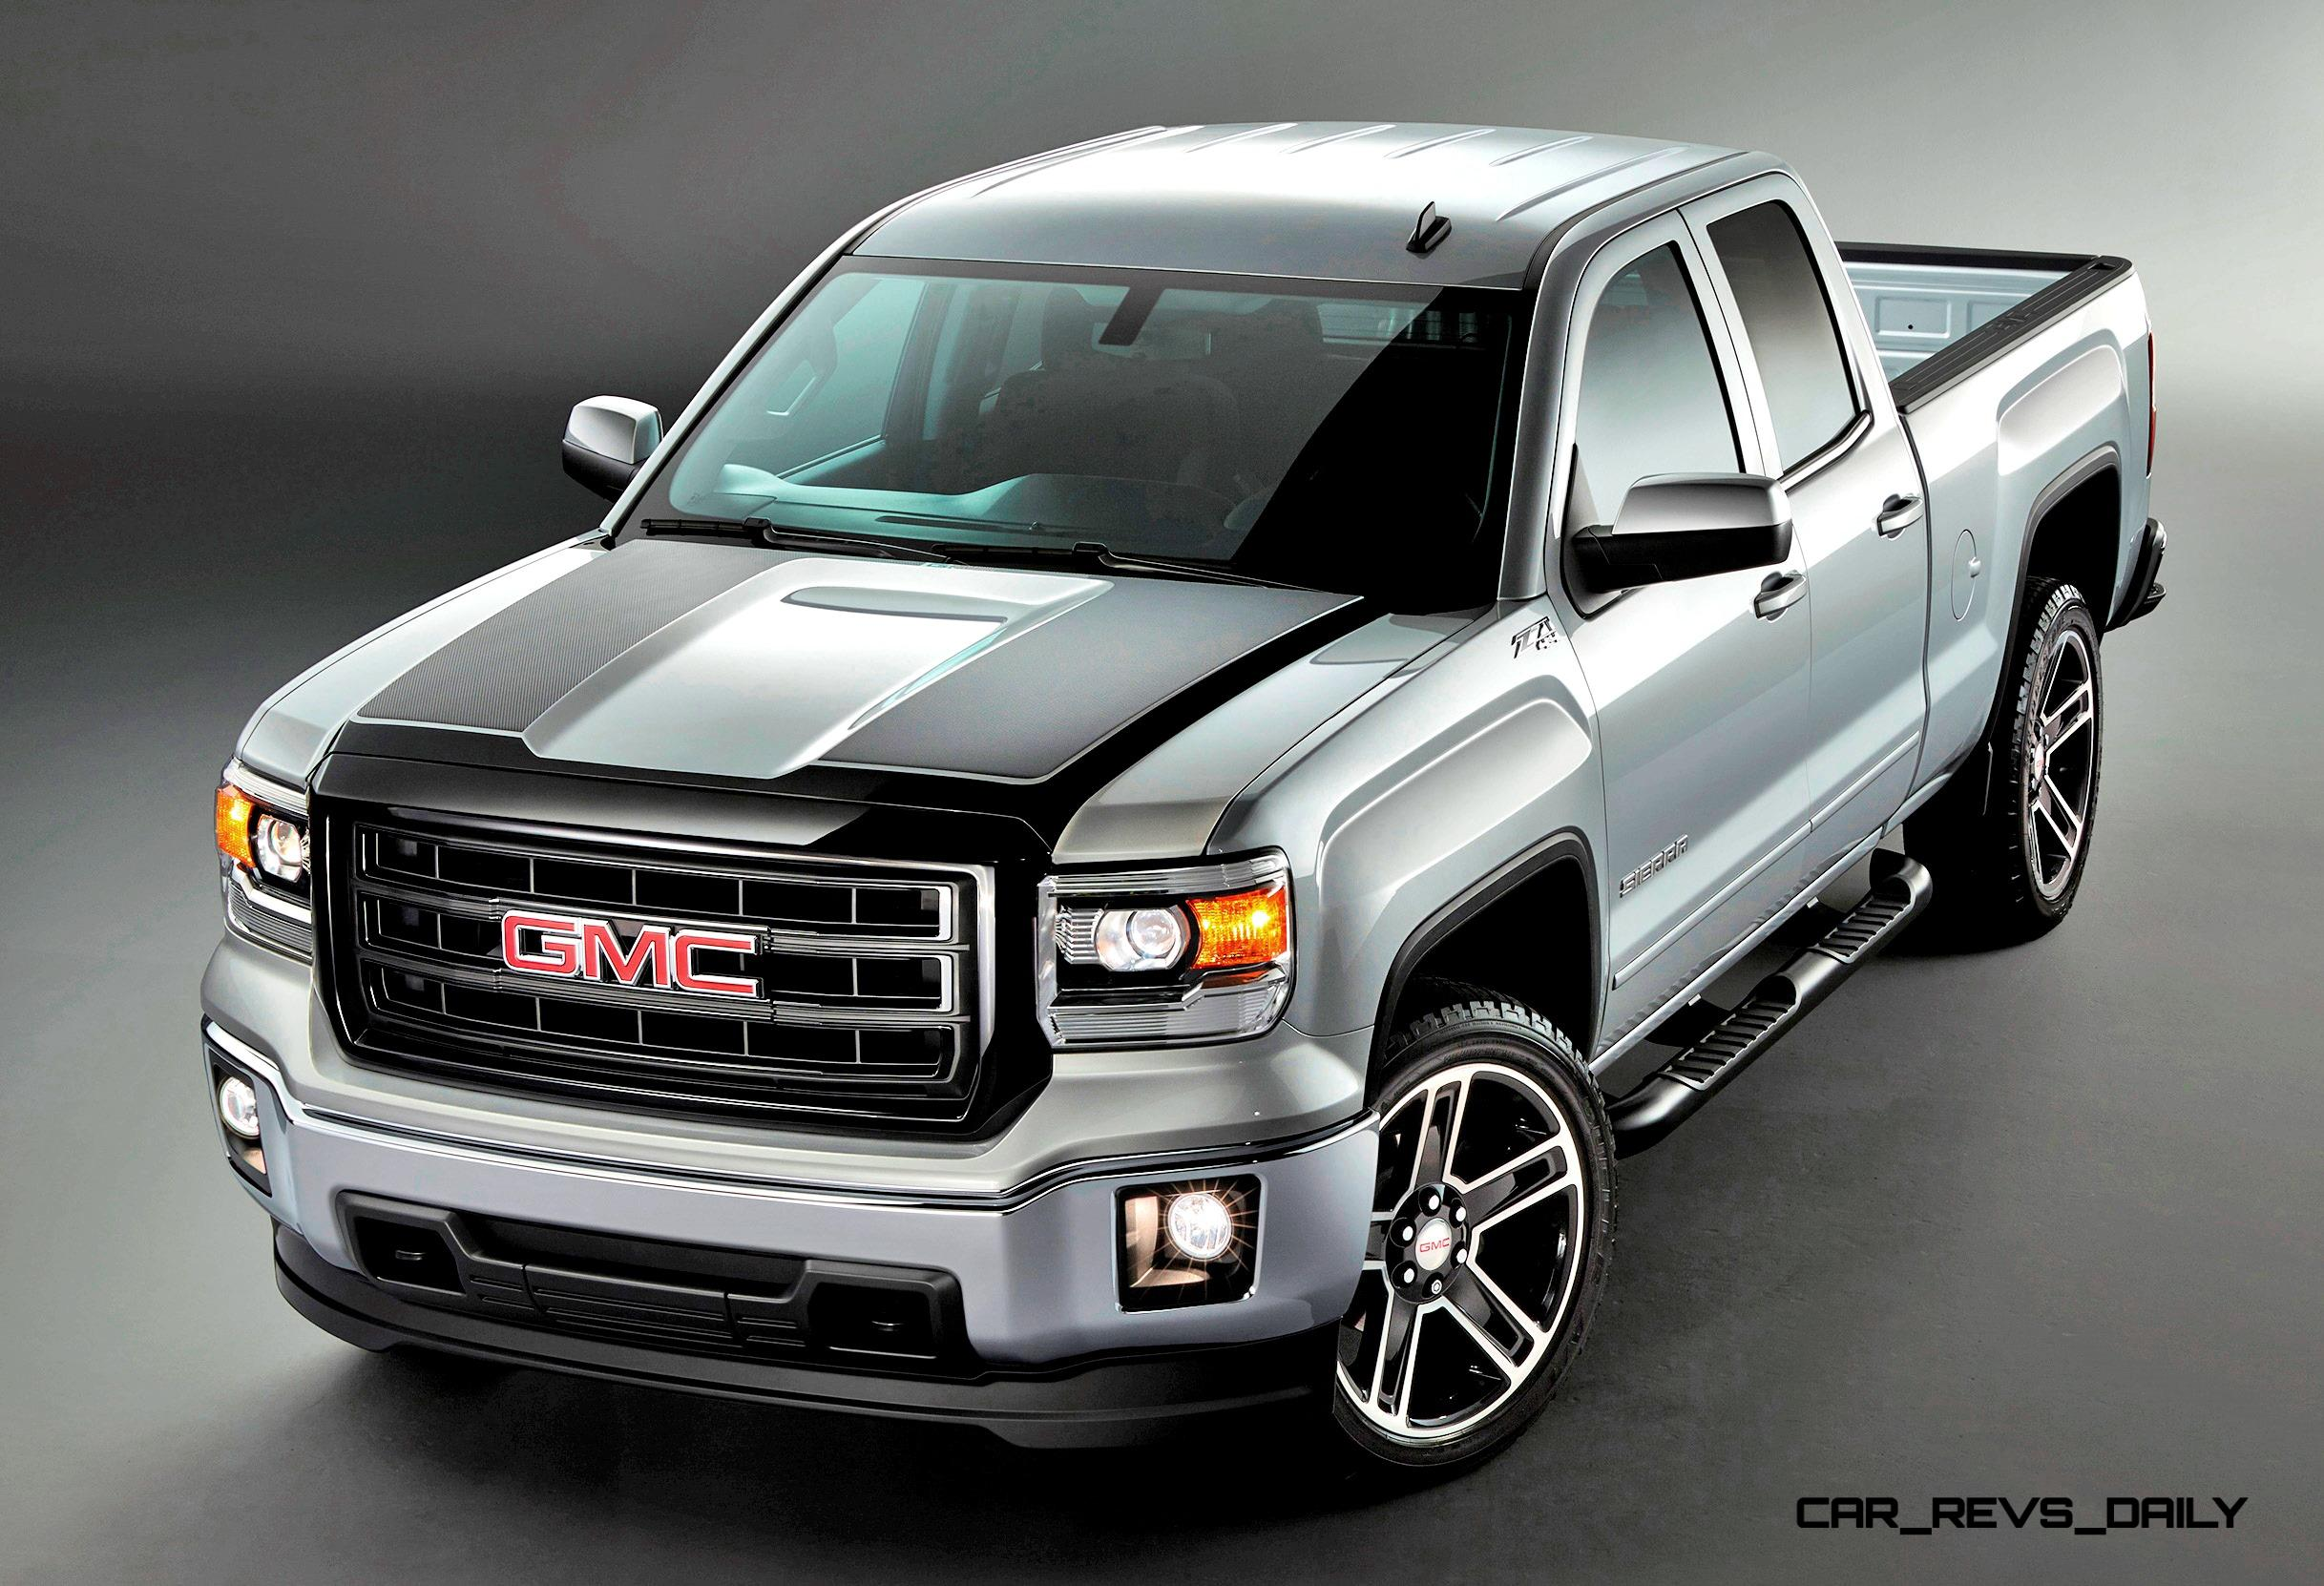 2015 Gmc Sierra Elevation And Carbon Editions Bring Top Flight Leds And Stylish Black Wheels